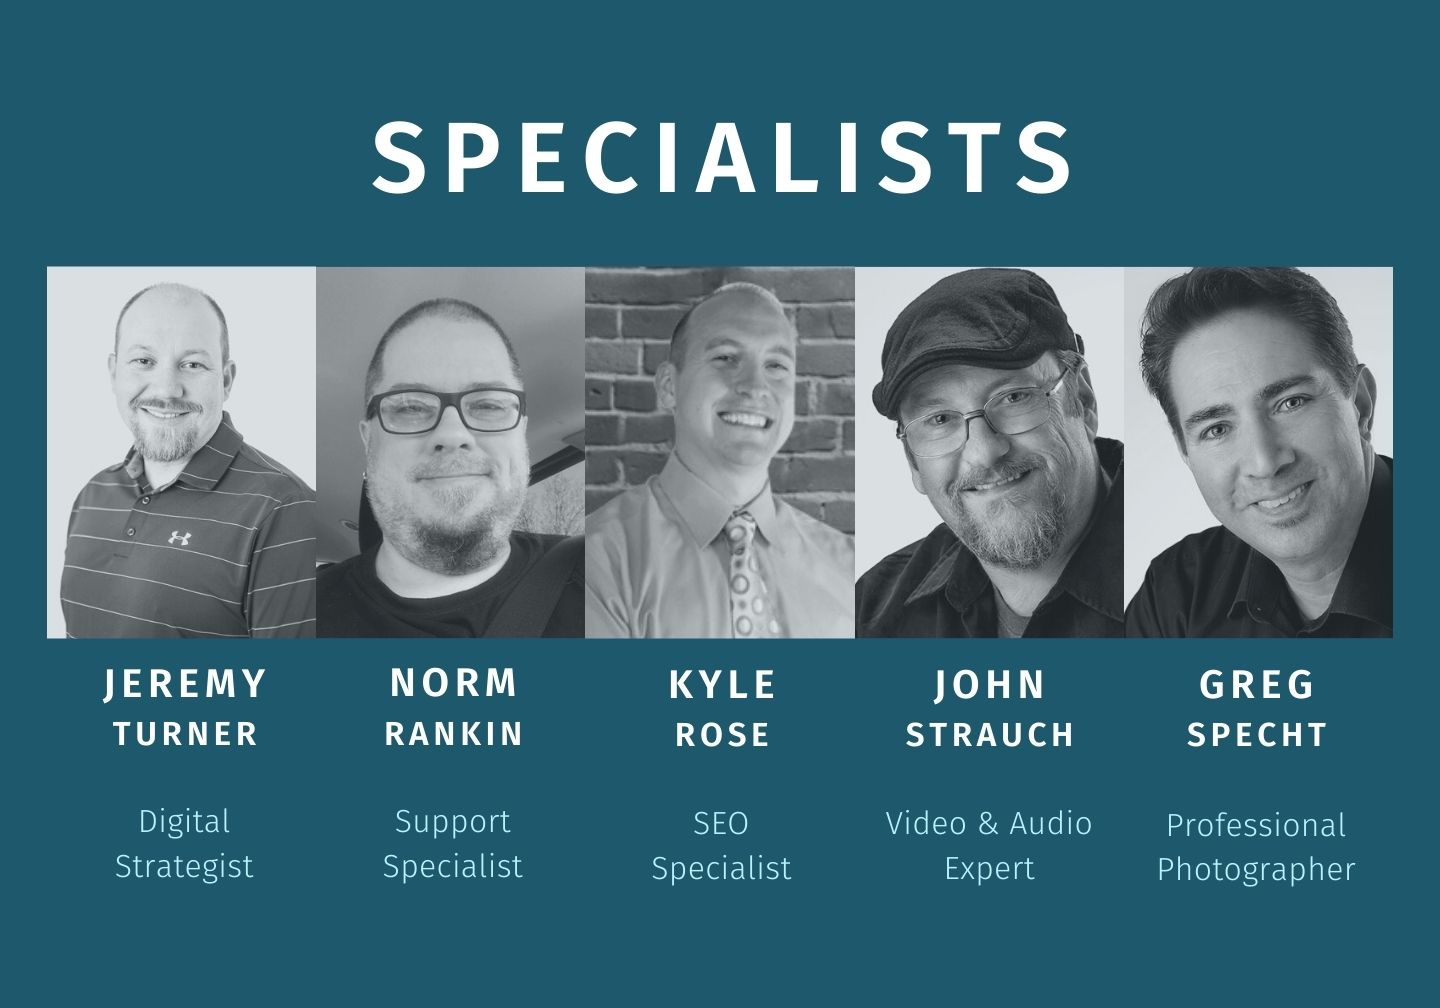 Lewis Media Group Specialists - Jeremy Turner, Digital Strategist, Norm Rankin, Support, Kyle Rose, SEO, John Strauch, Video & Audio Expert, Greg Specht, Professional Photographer